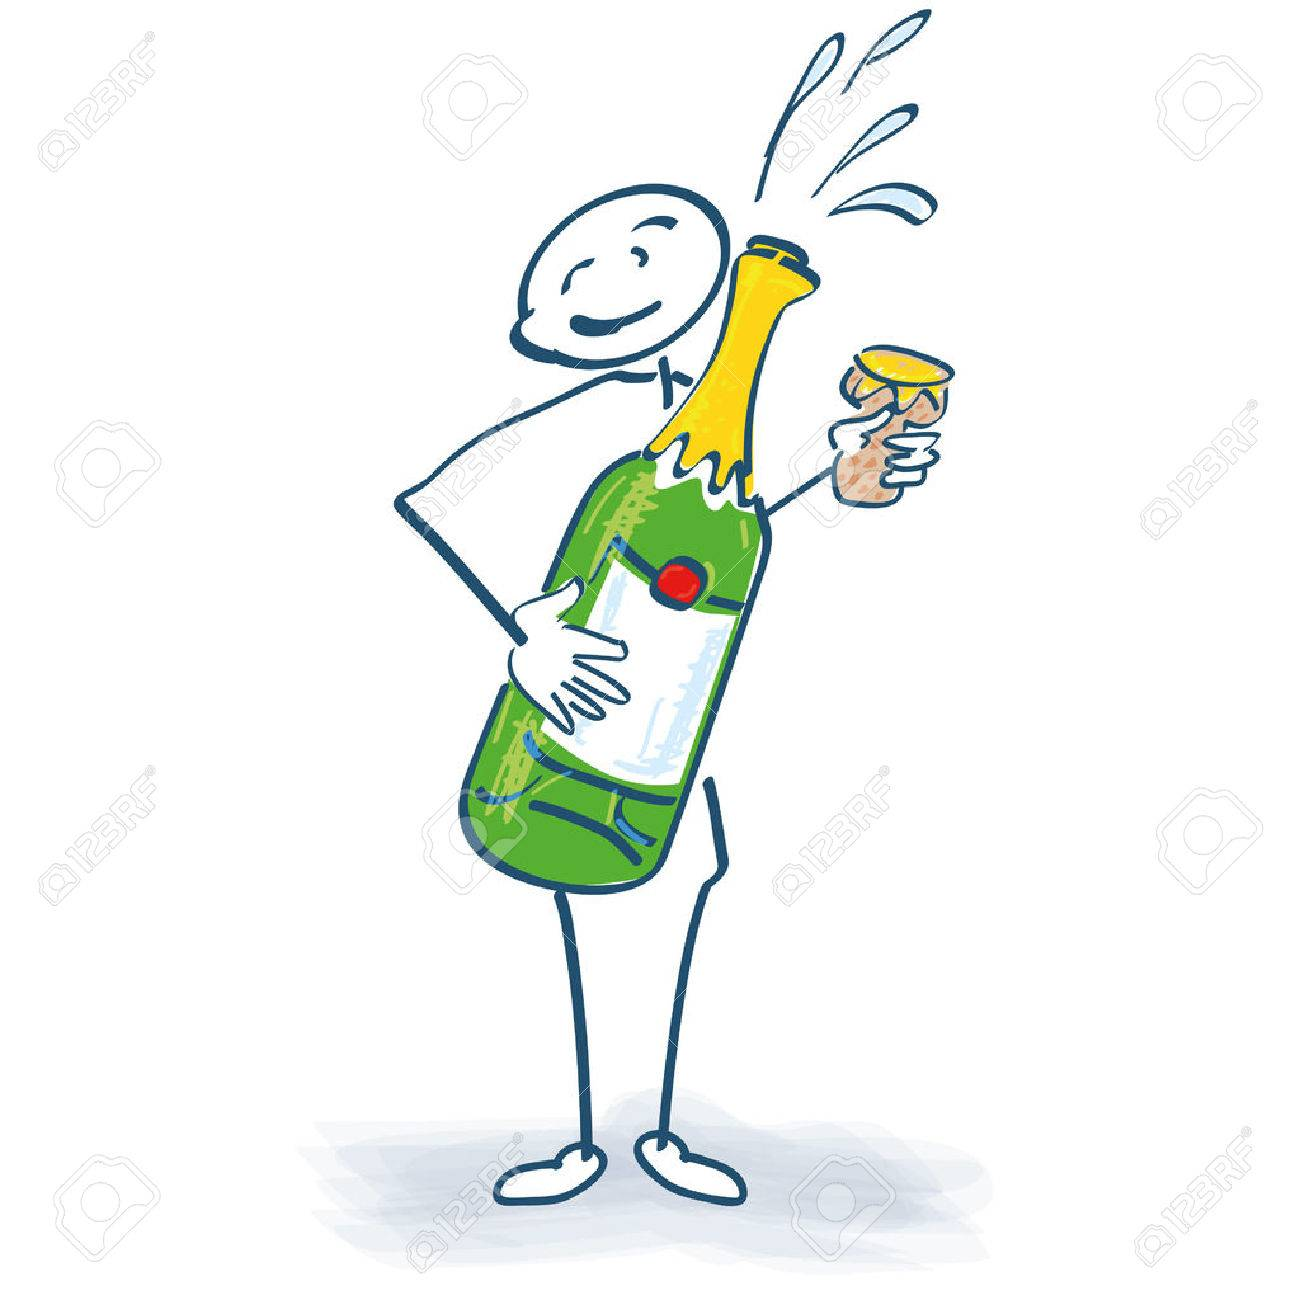 Stick figure with champagne bottle - 34315839